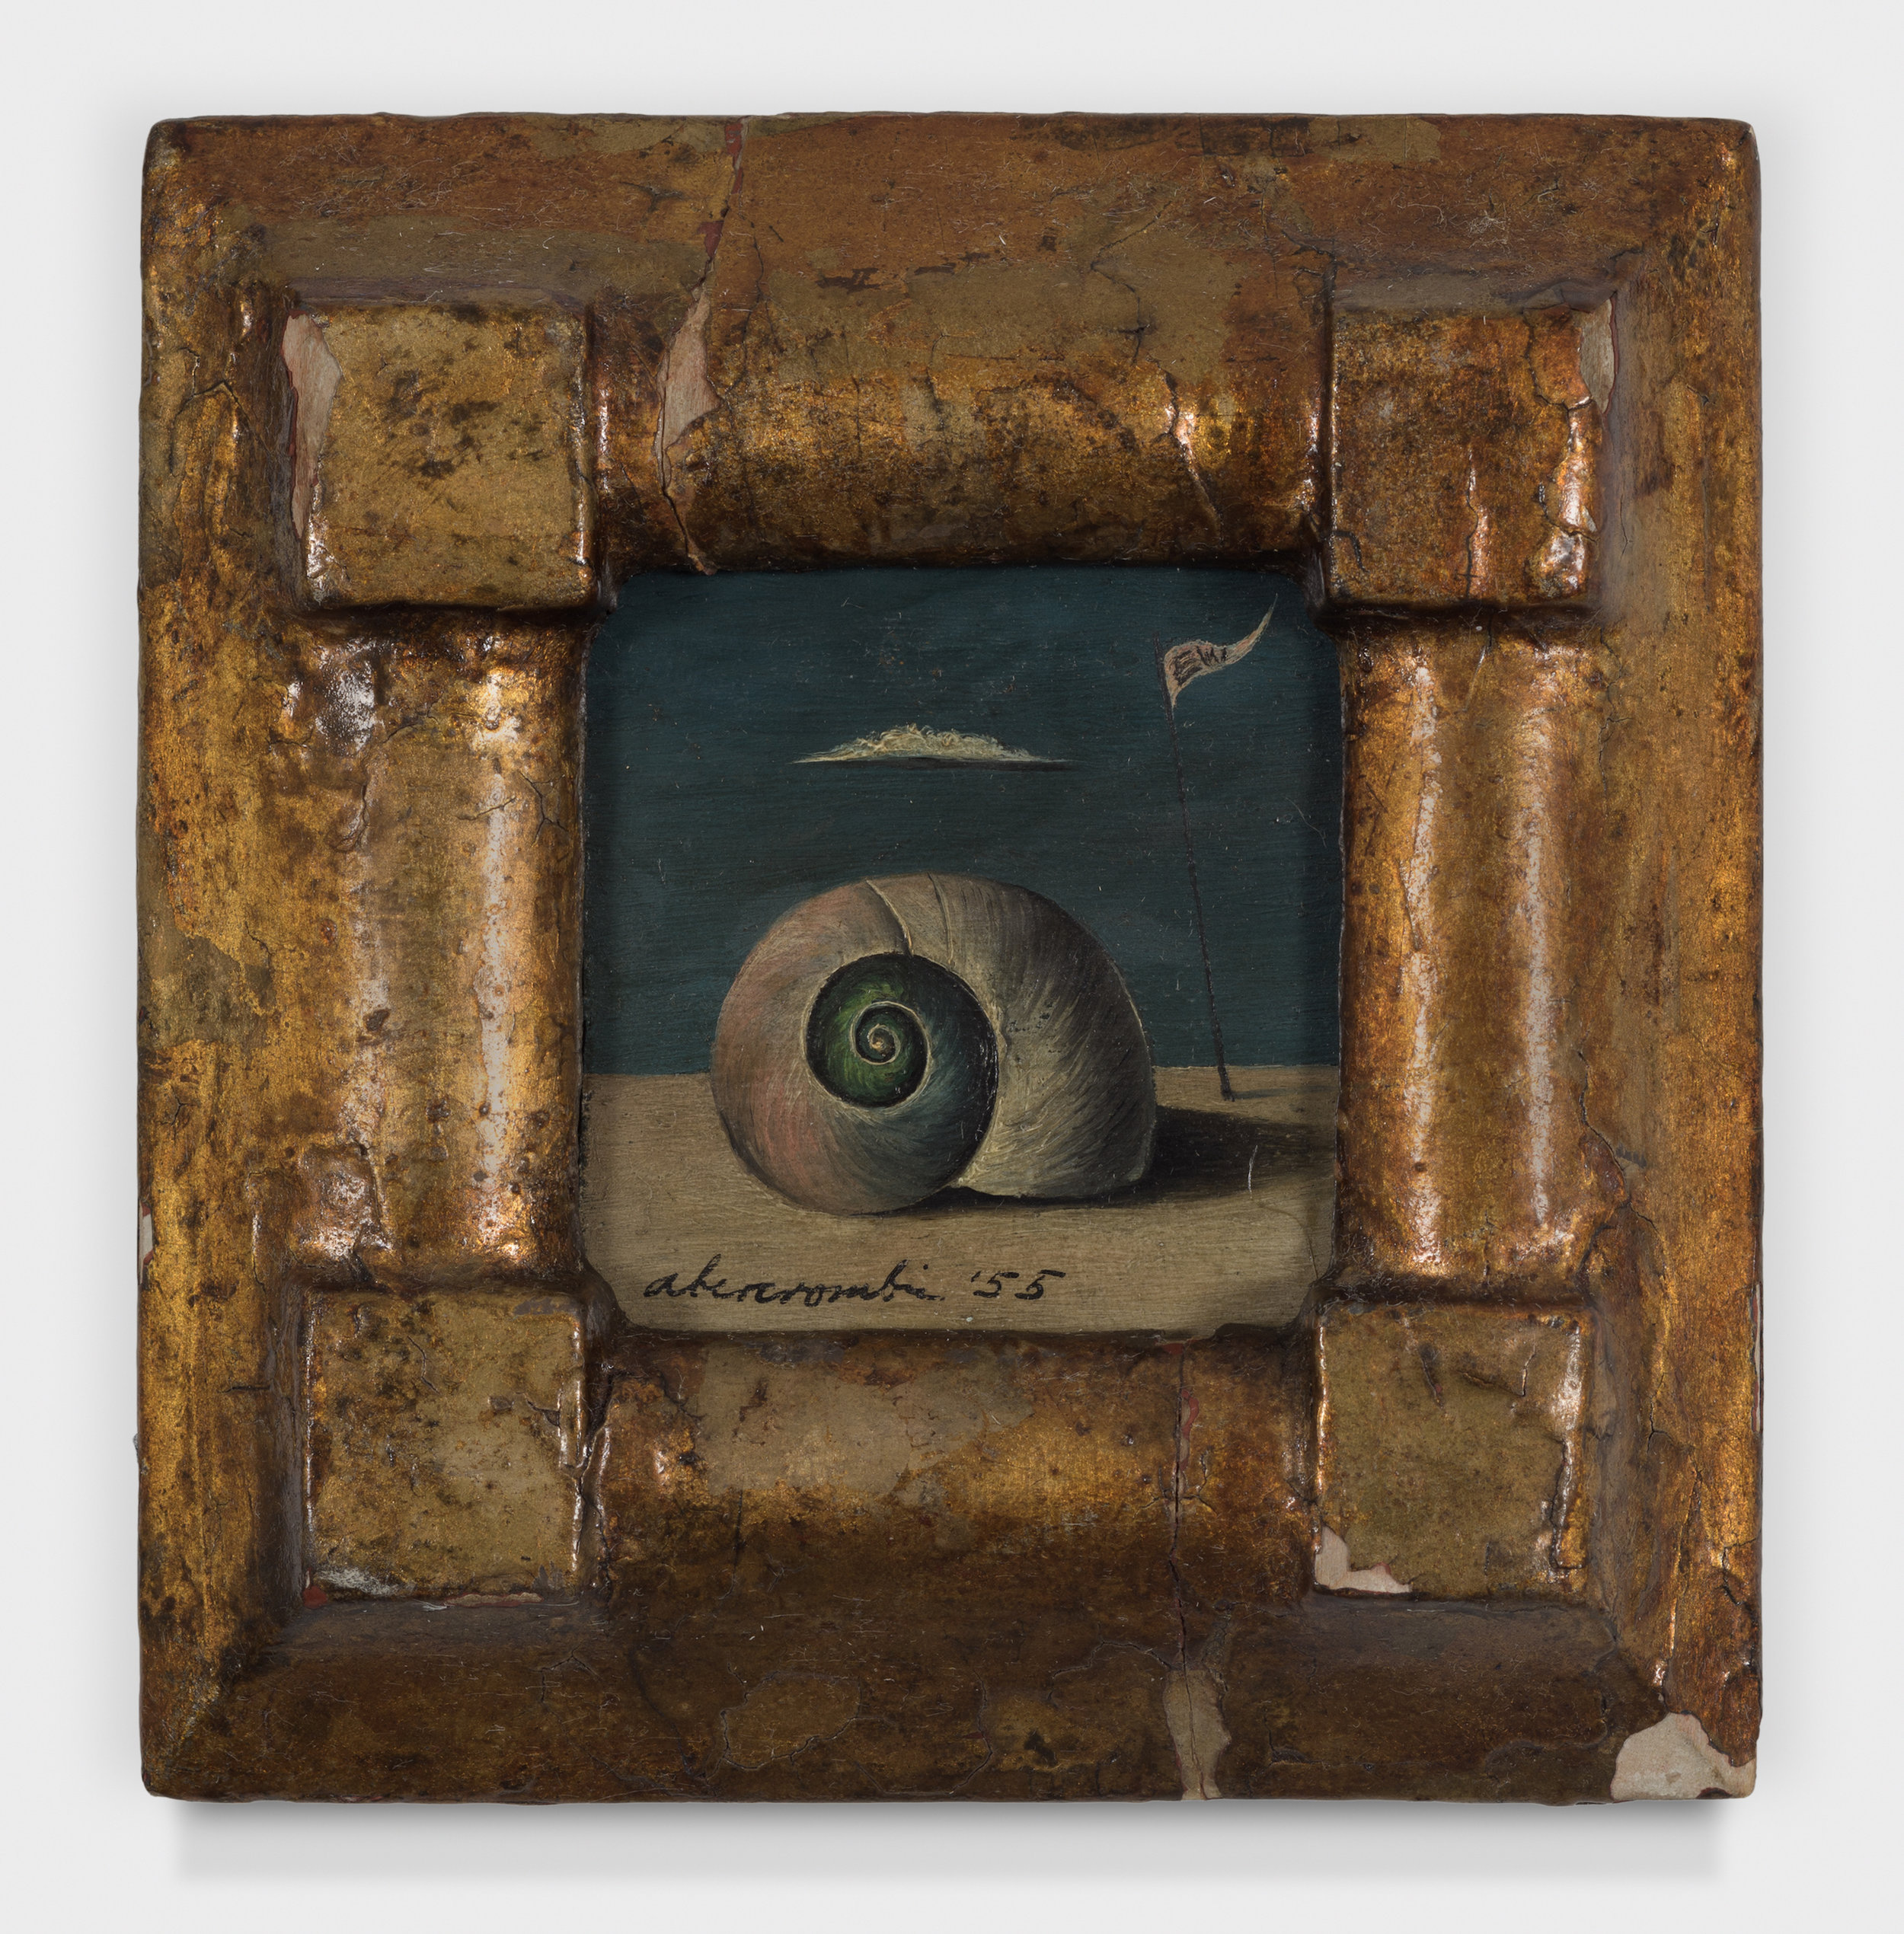 Snail and Flag,  1955, Oil on masonite. 2 1/4 × 2 inches (unframed); 4 1/2 × 4 1/2 inches (framed). Collection of August Becker.